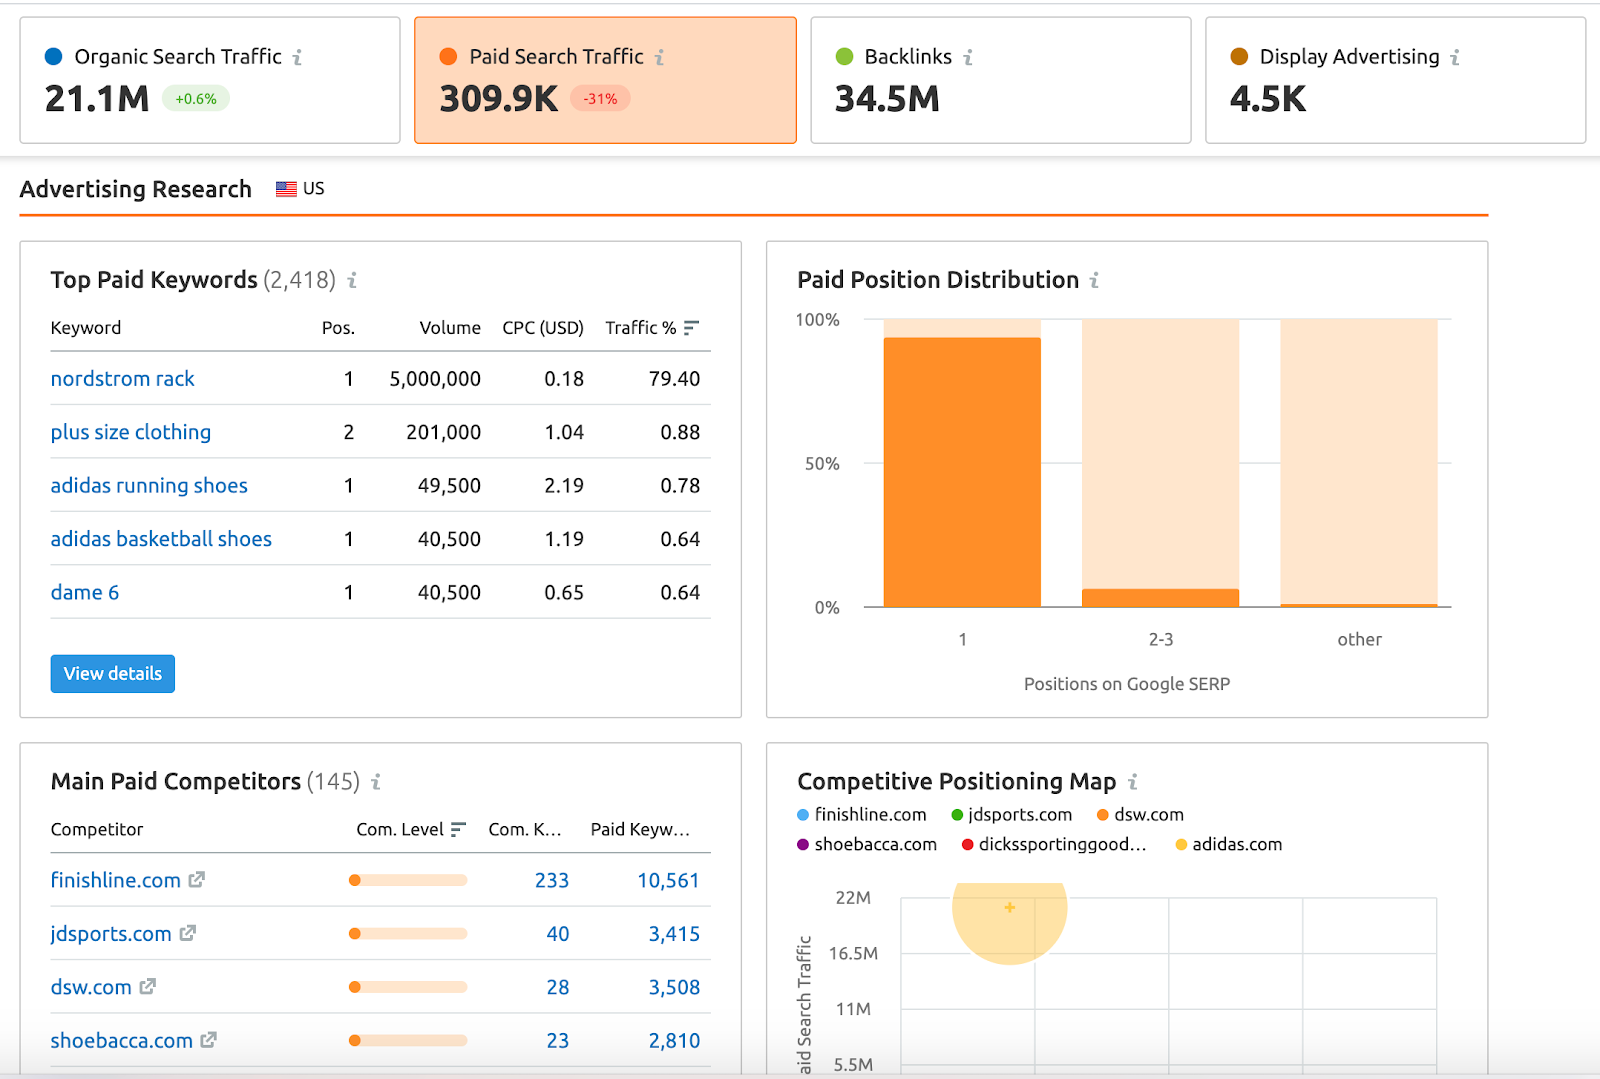 Semrush Paid Search Traffic